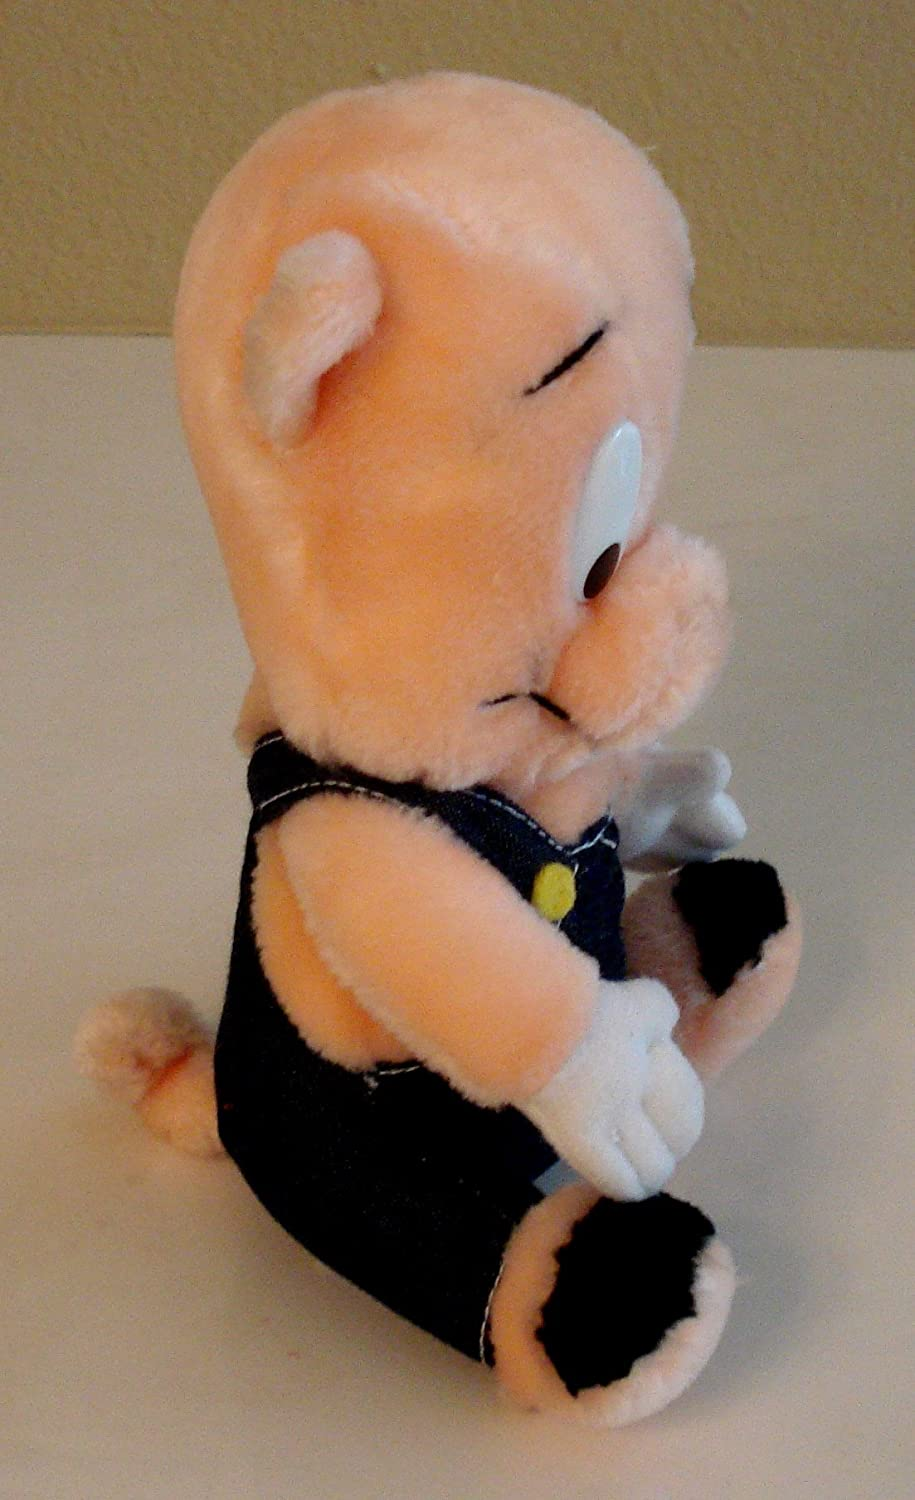 Blackspot 27 RetailSource Ltd 6-735-Bla 27 ToySource Grumpy Country The Grumpy Country Plush Collectible Toy